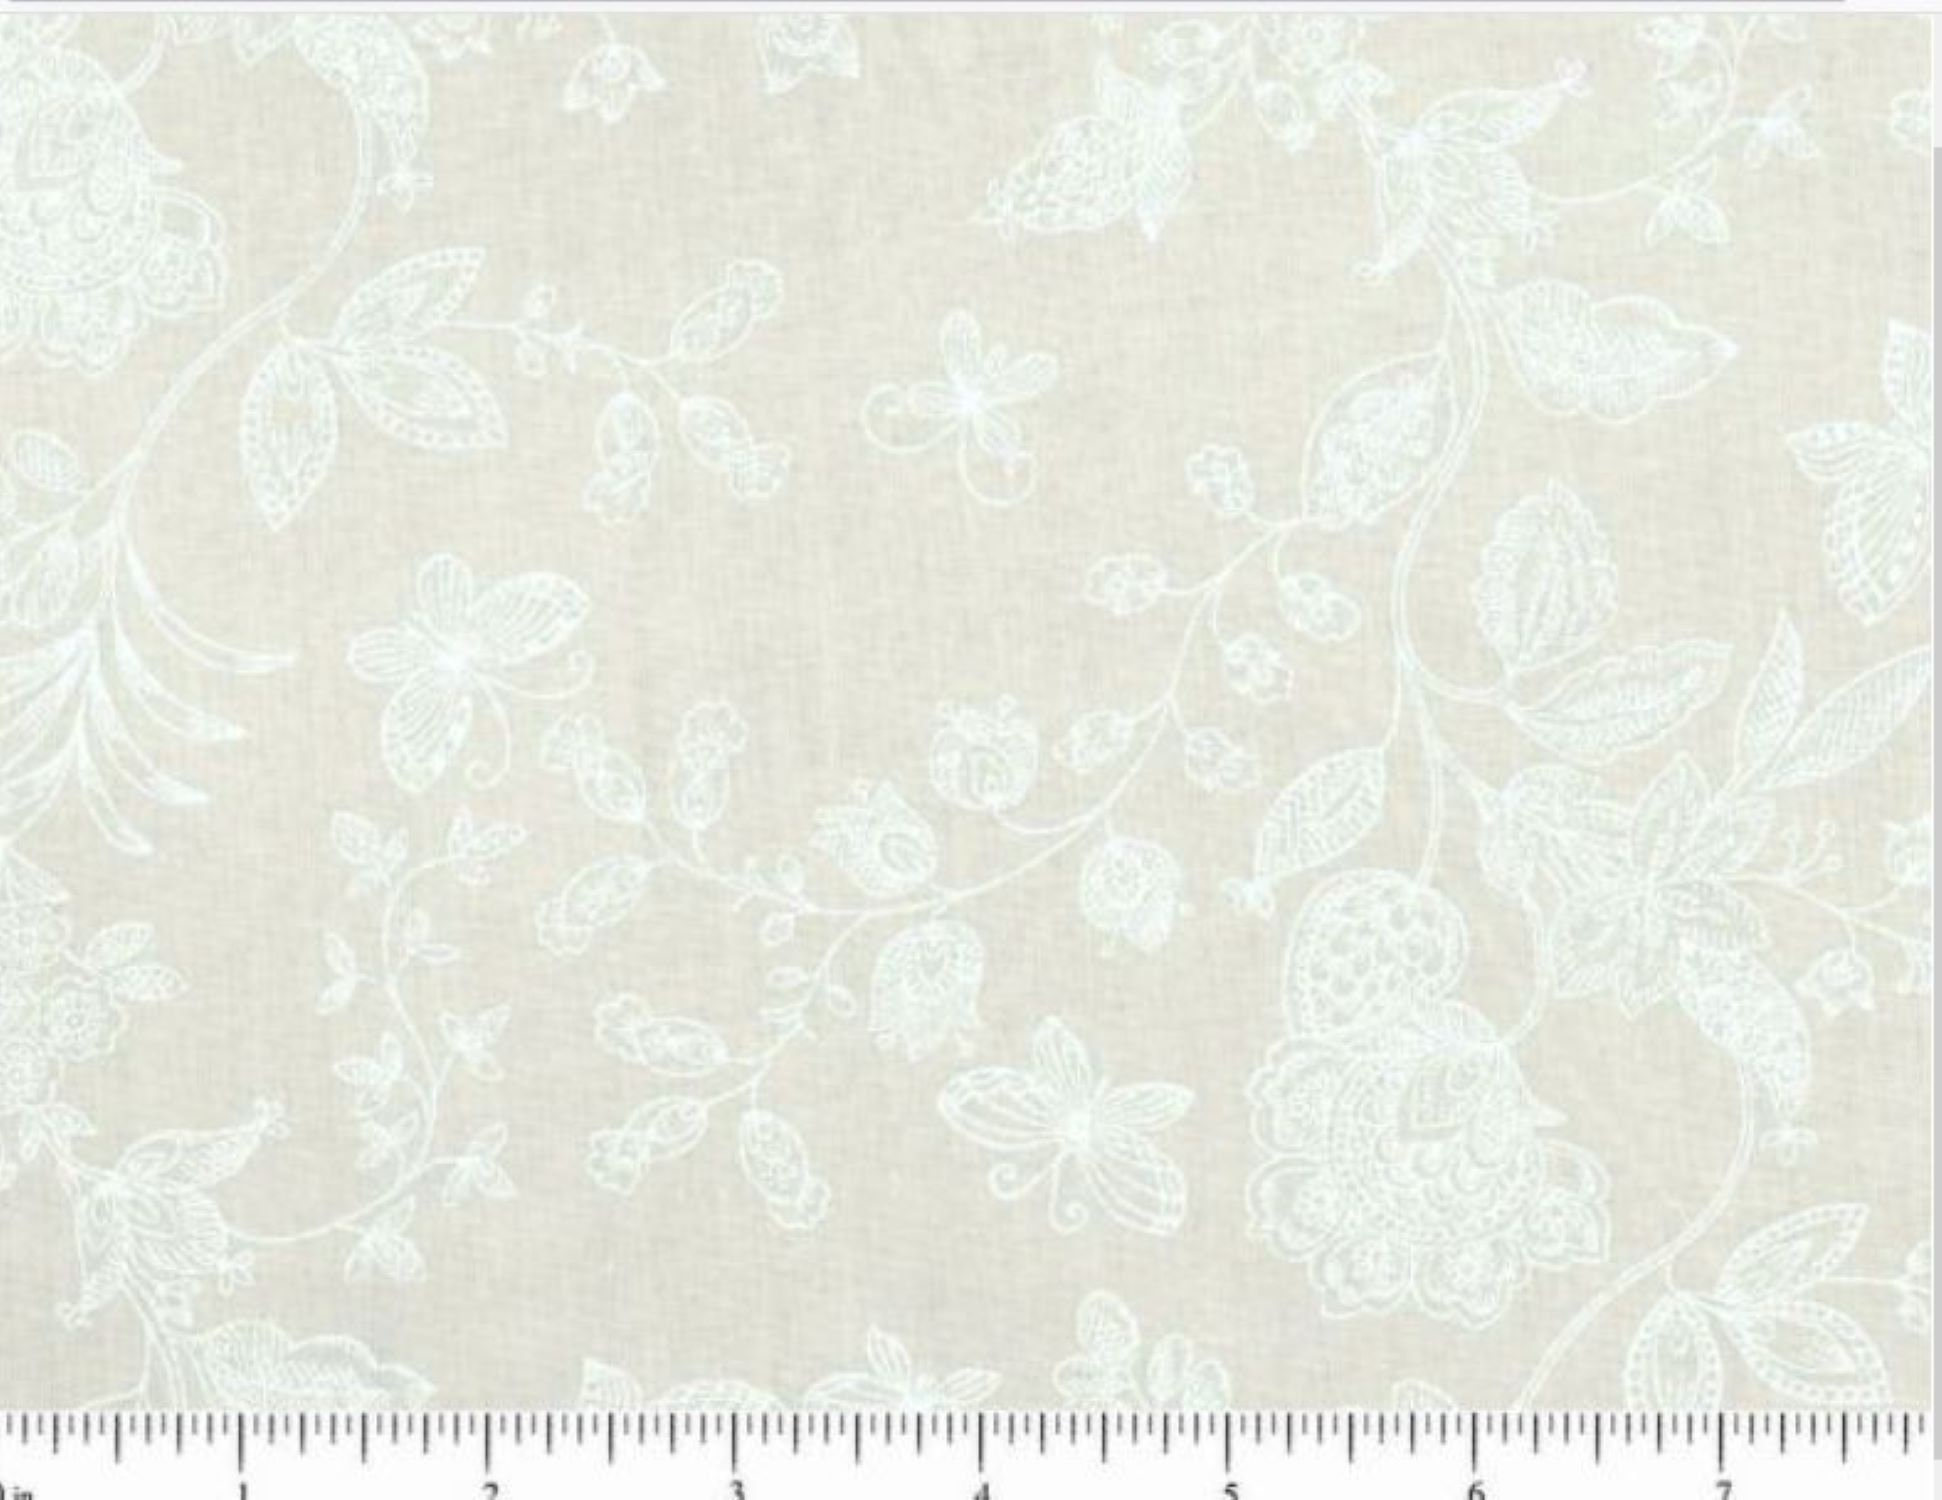 108 Wide Quilt Backing Fabric Subtle Floral Etsy